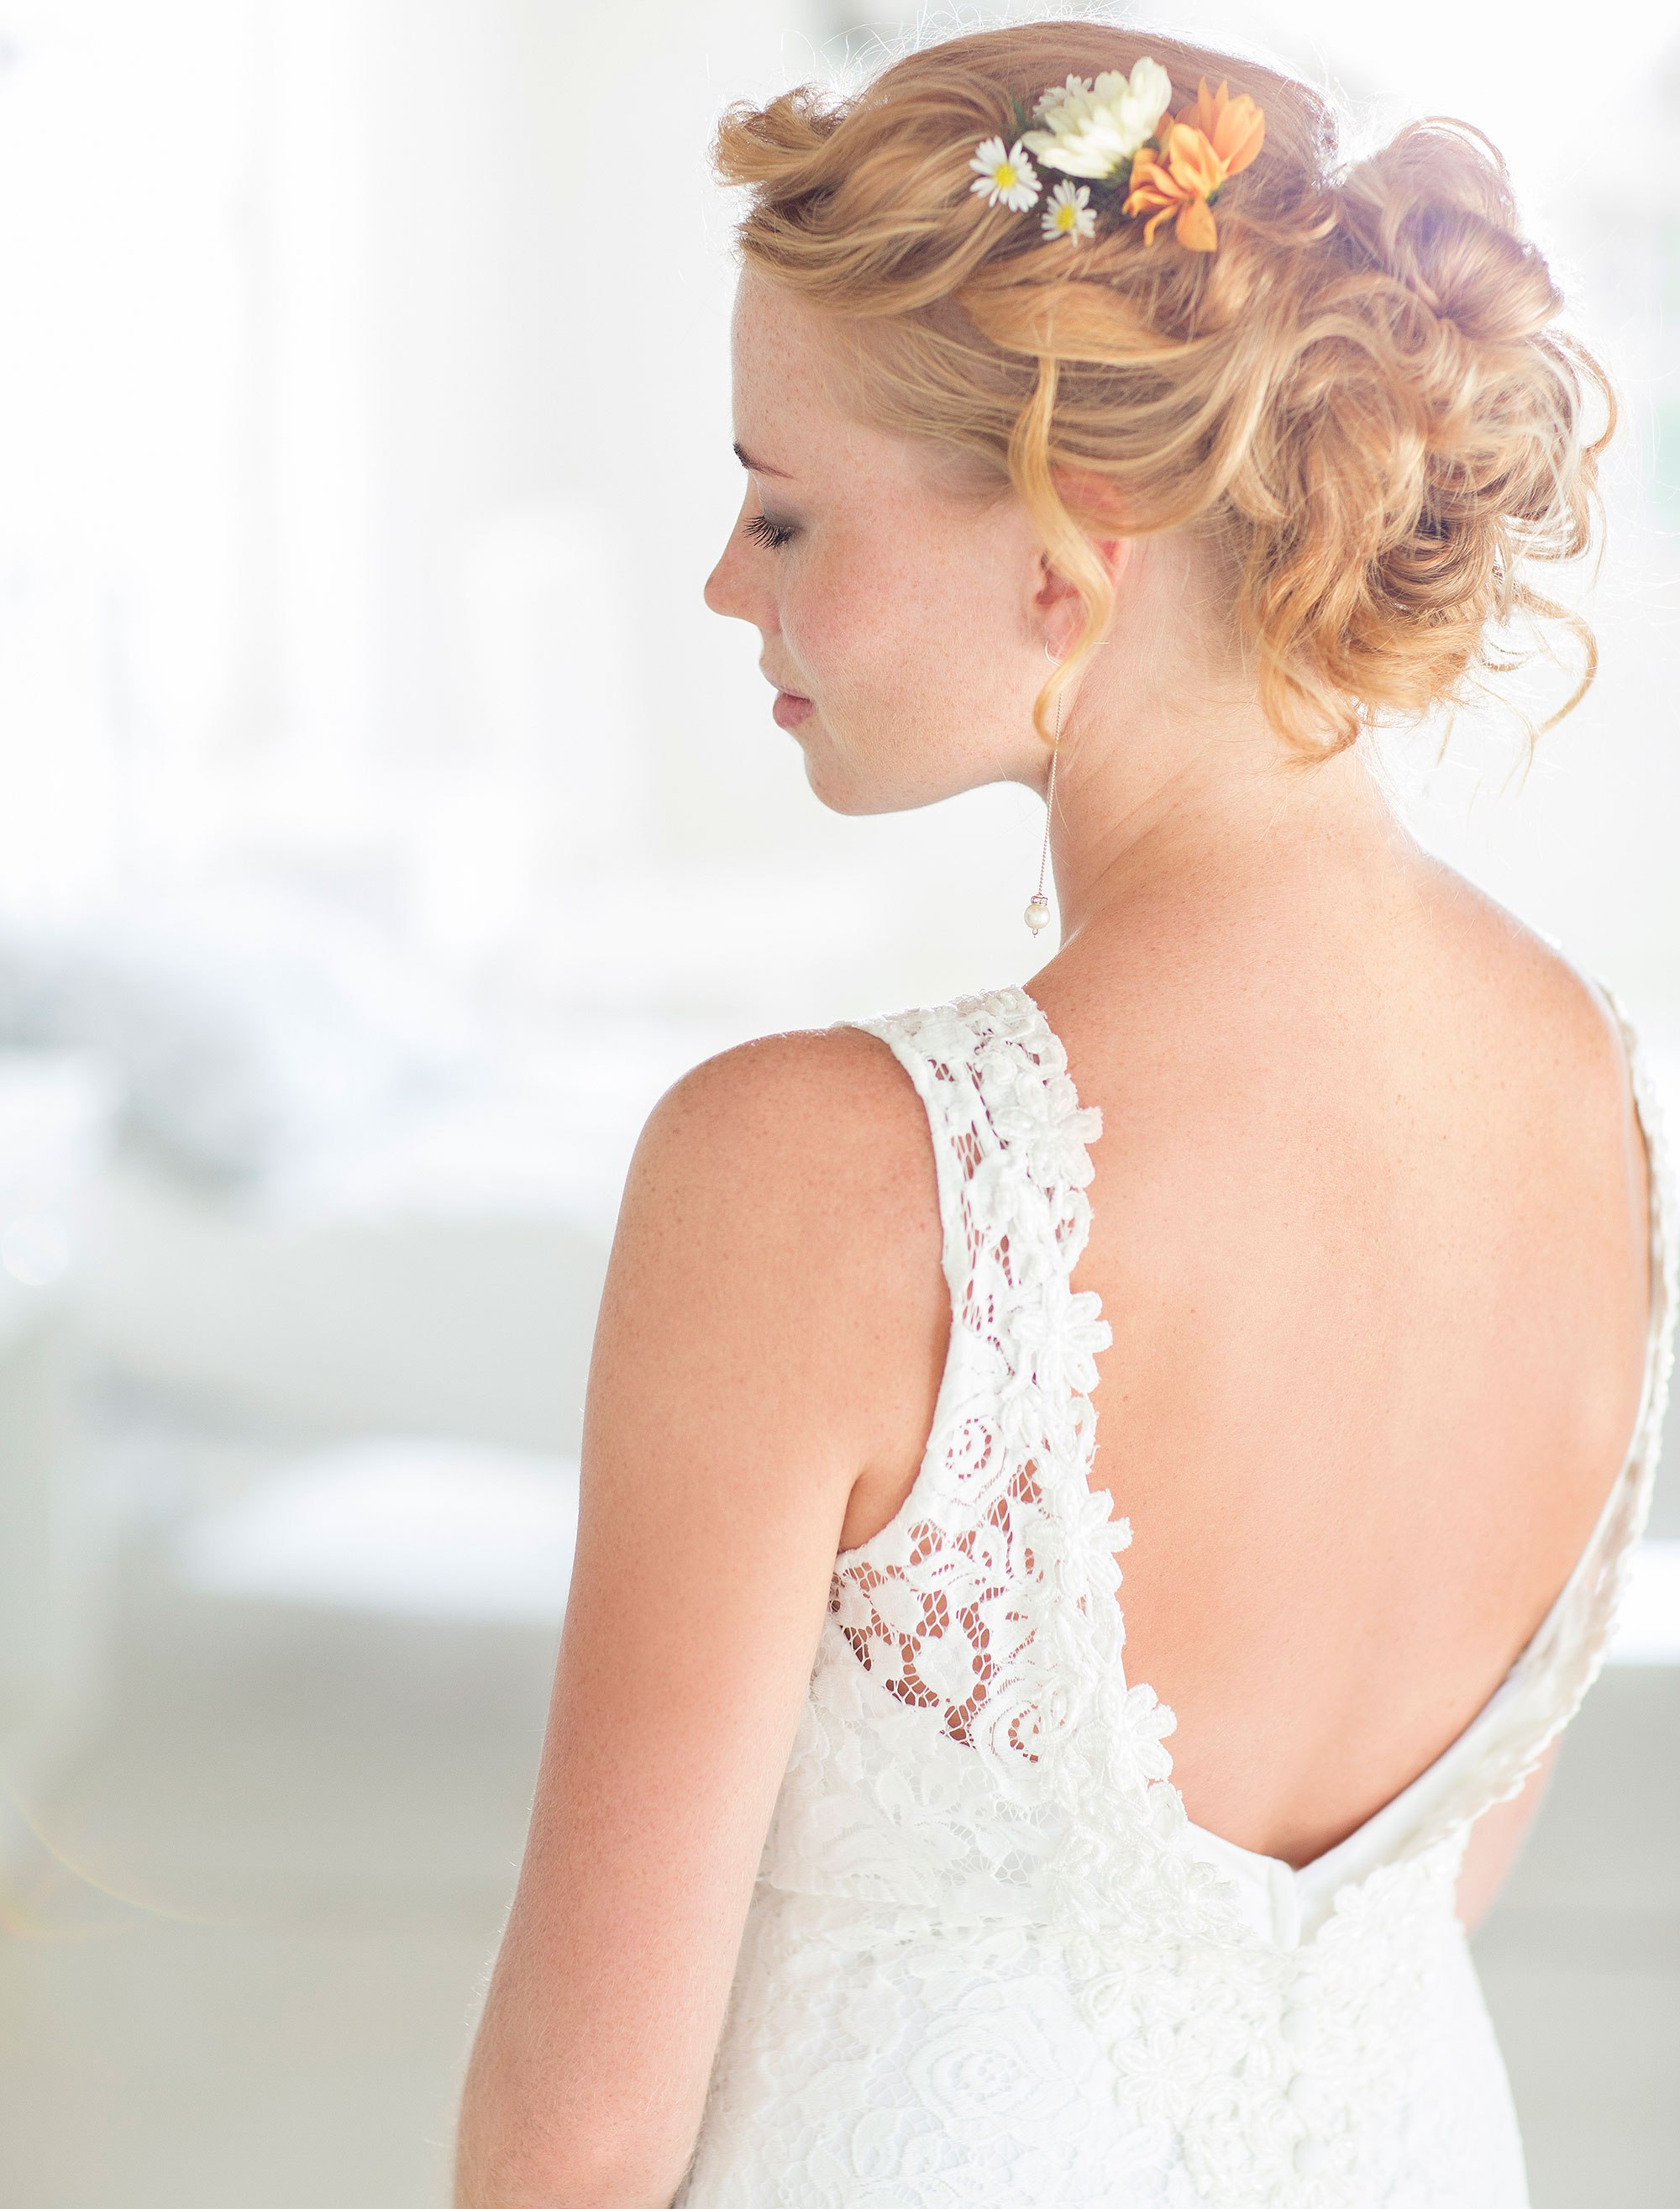 Young bride standing in sunny bedroom